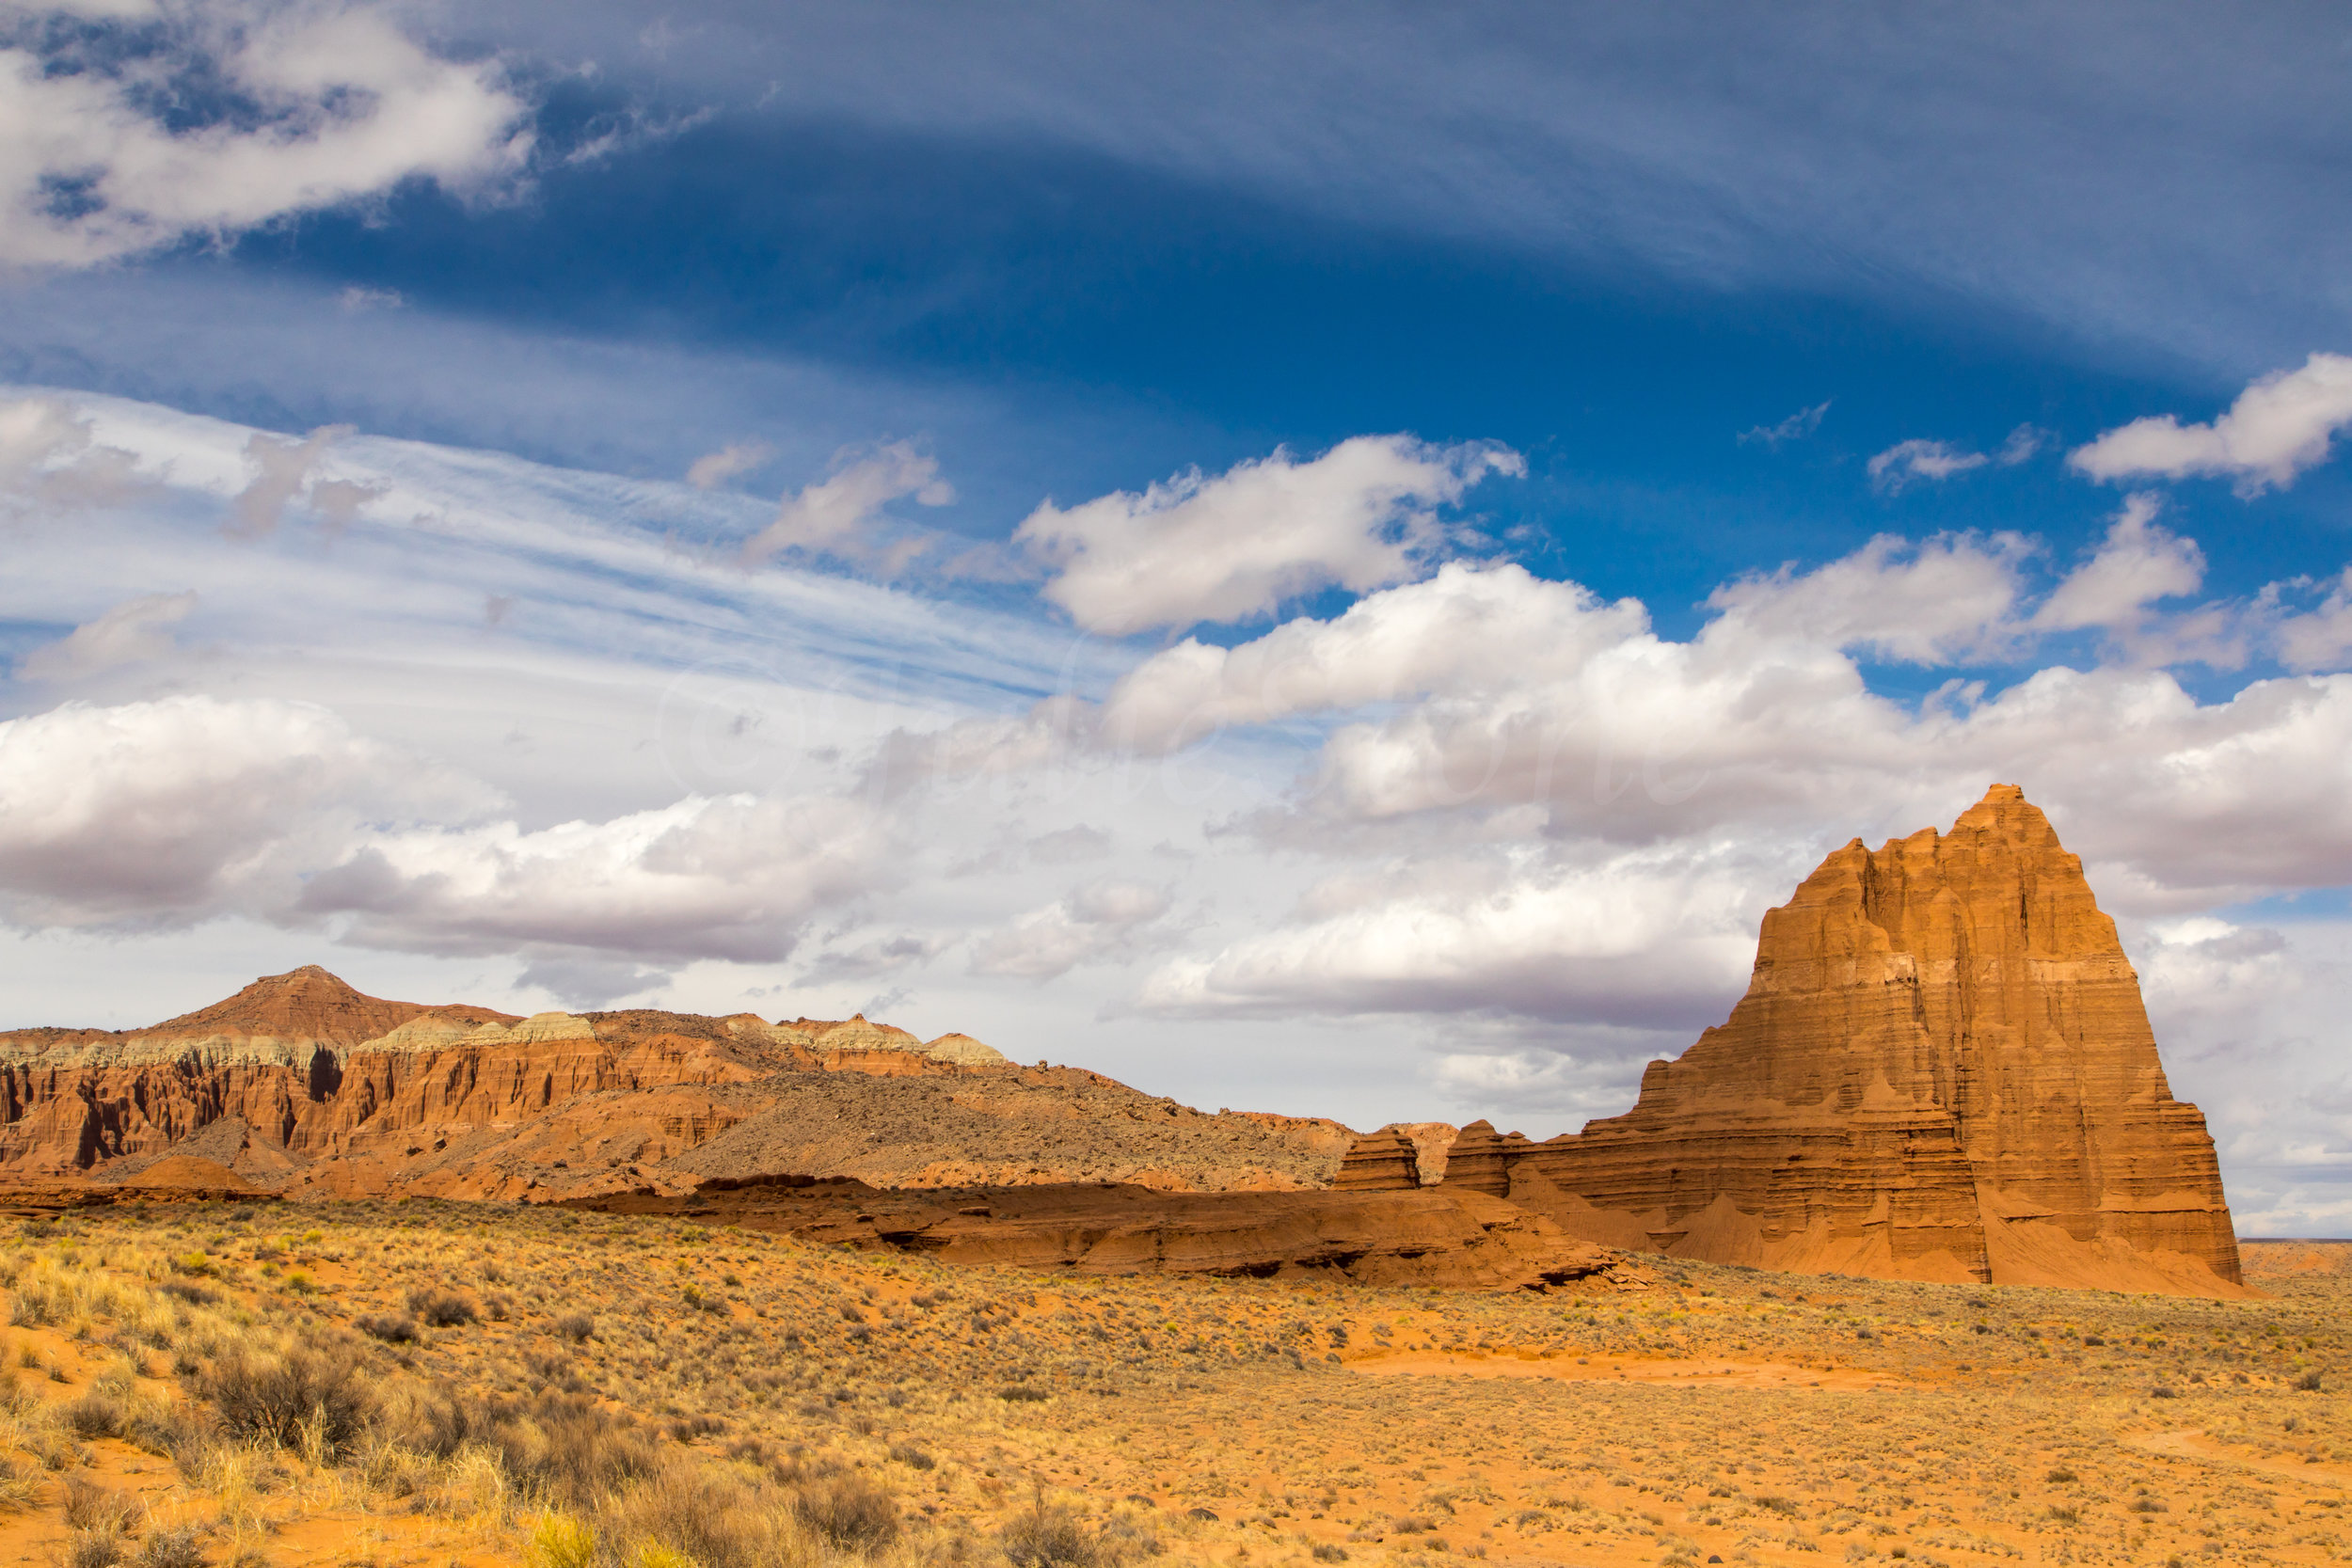 Capitol Reef National Park, Image # 2087